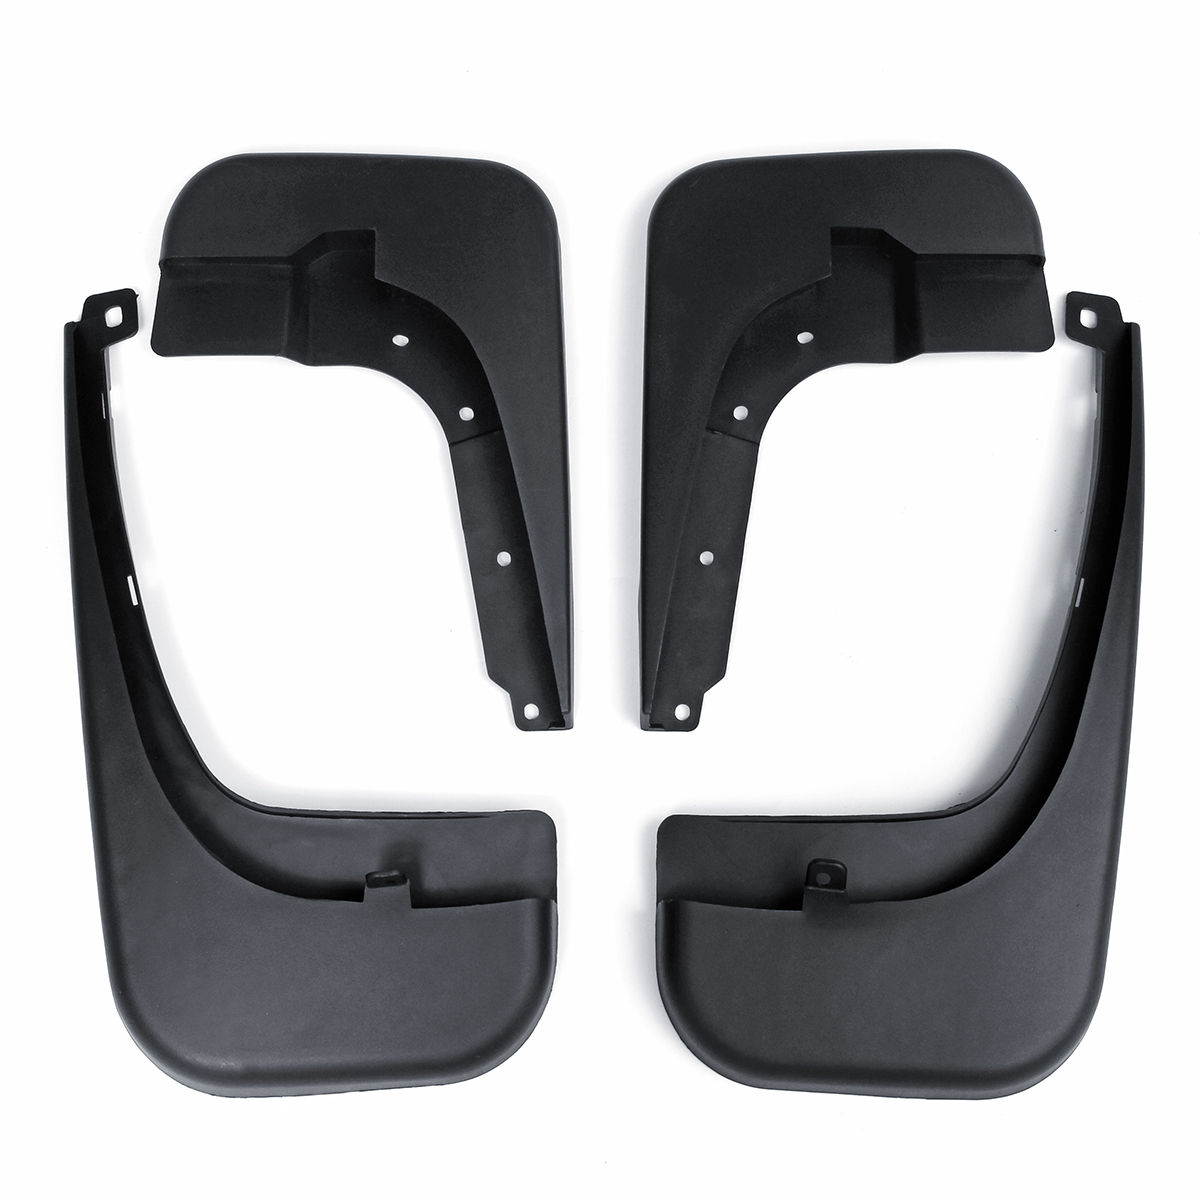 Car Front Rear Mud Flaps For Benz Vito V Class W447 2015 2016 2017 For Fender Splash Guards Mudguard Accessories